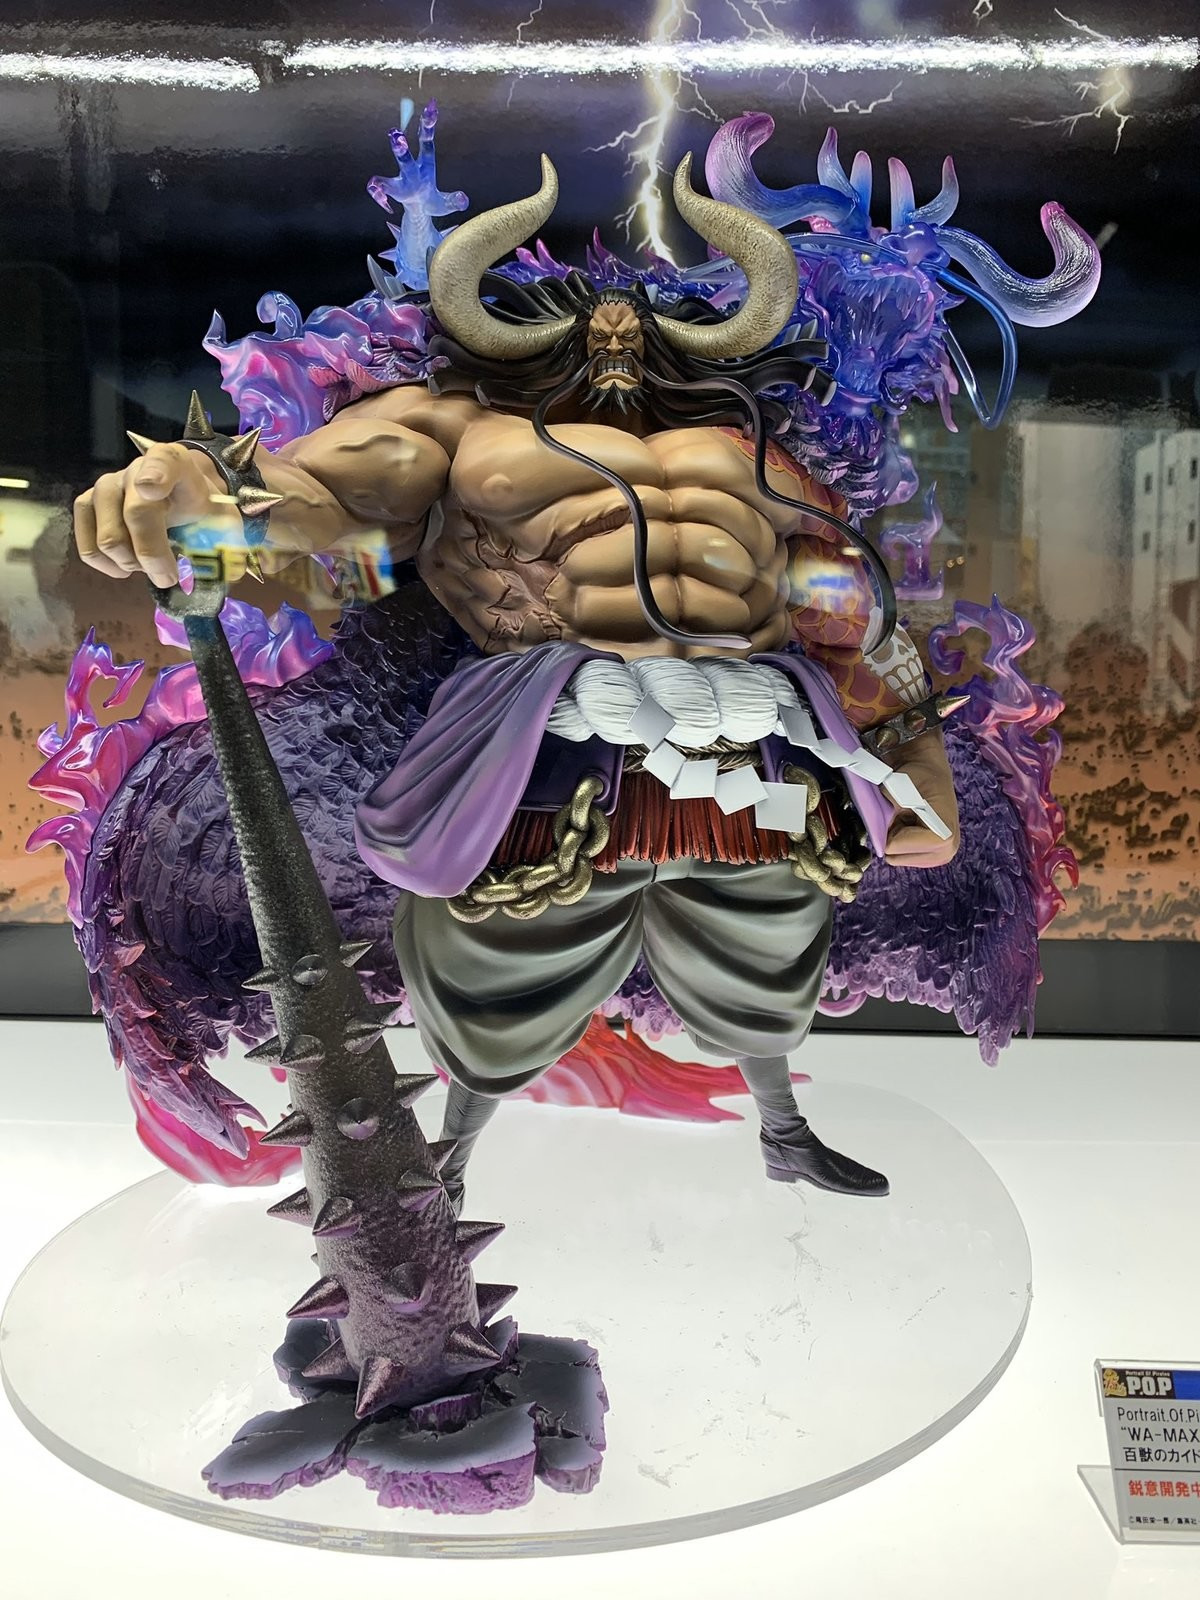 the kaido. join list: onepiece (236 subs)Mention History.. Is it just me or does Kaidos size keep changing? At one point he looks like a literal giant- like, an Elbaf giant Then he looks maybe whitebeard size (big but n